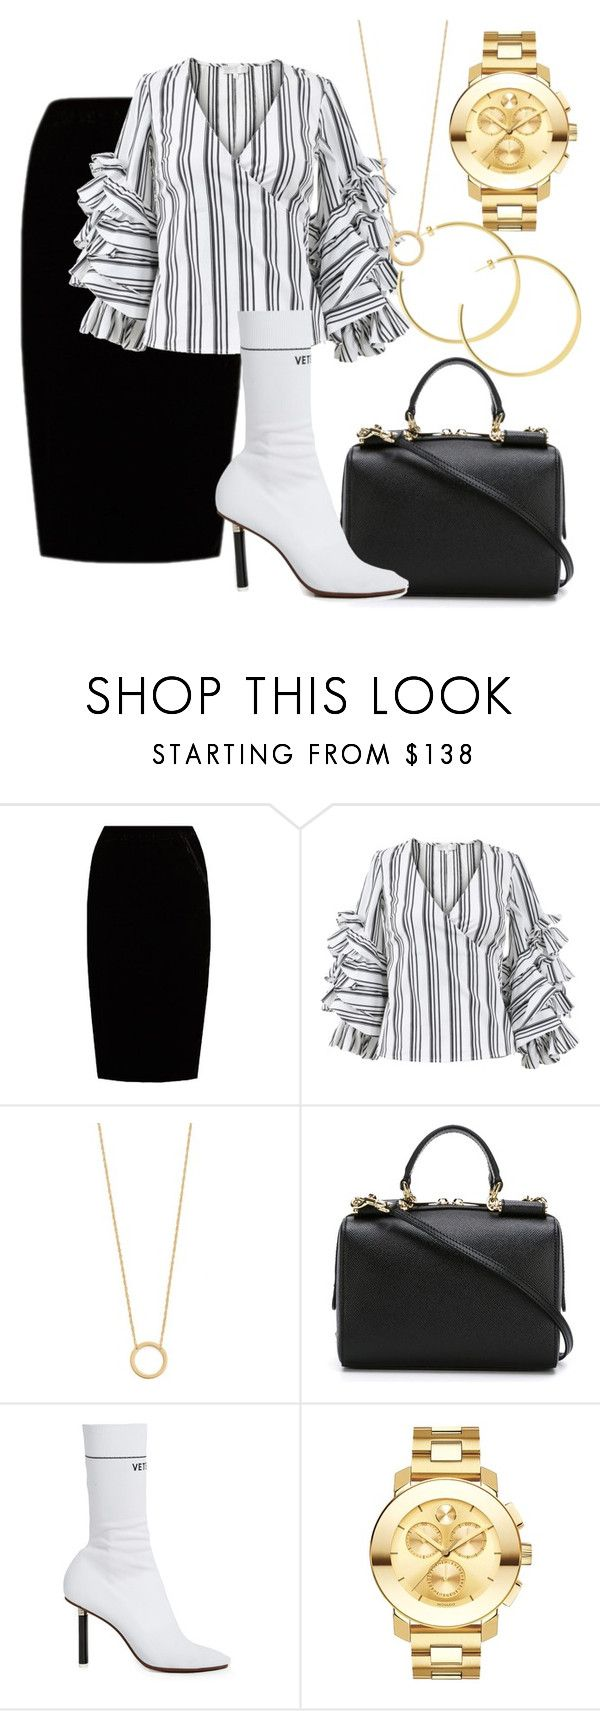 """""""Untitled #2747"""" by thestylegosssip ❤ liked on Polyvore featuring Jupe By Jackie, Caroline Constas, Jennifer Zeuner, Dolce&Gabbana, Vetements and Movado"""